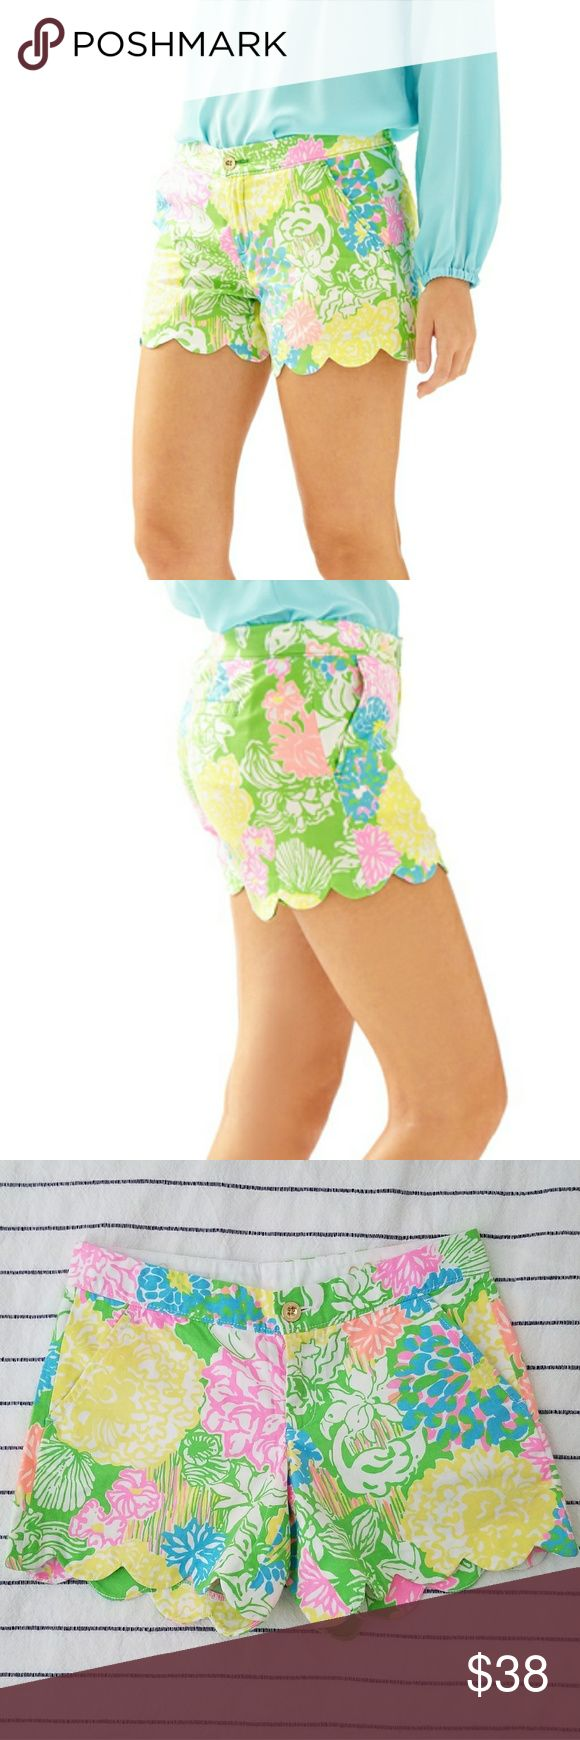 Lilly Pulitzer Buttercup Shorts - Hibiscus Stroll Never worn. Size 00- fits 25-26 waists.   Super cute but don't like how they look on short legs like mine lol  * pattern on stock pics and actual garment vary Lilly Pulitzer Shorts